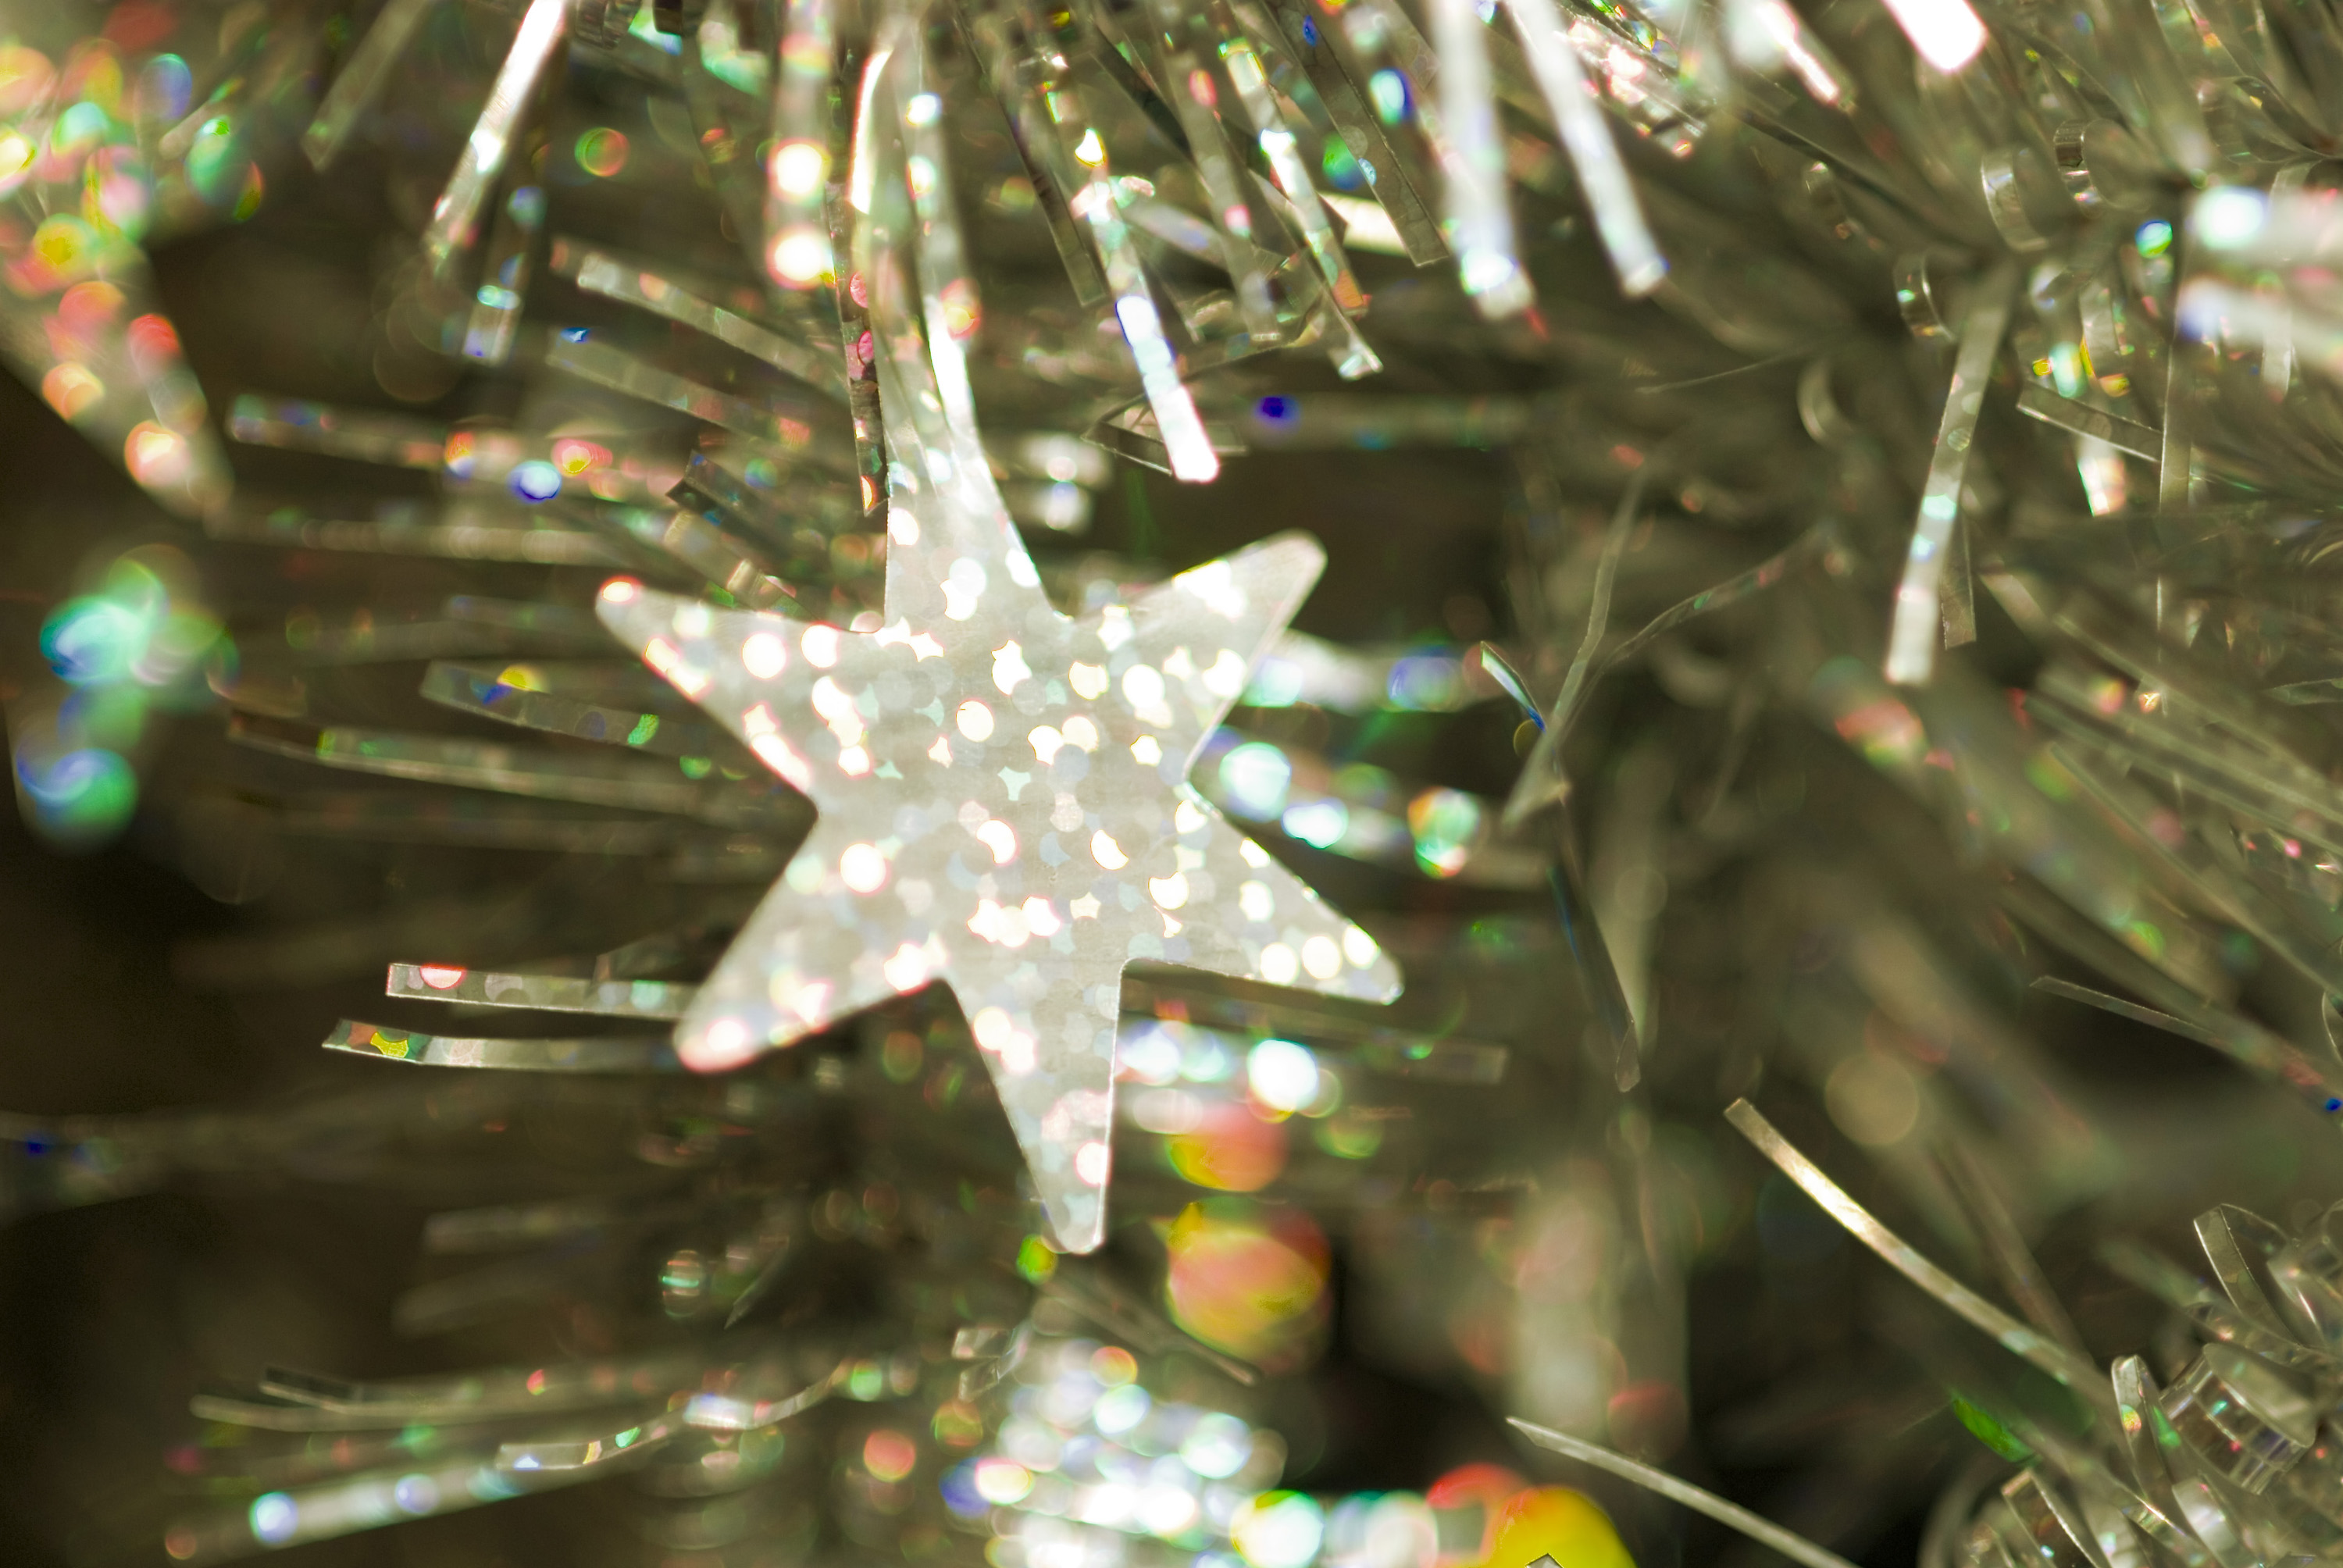 a festive sparkling background of tinsel with decorative star shape